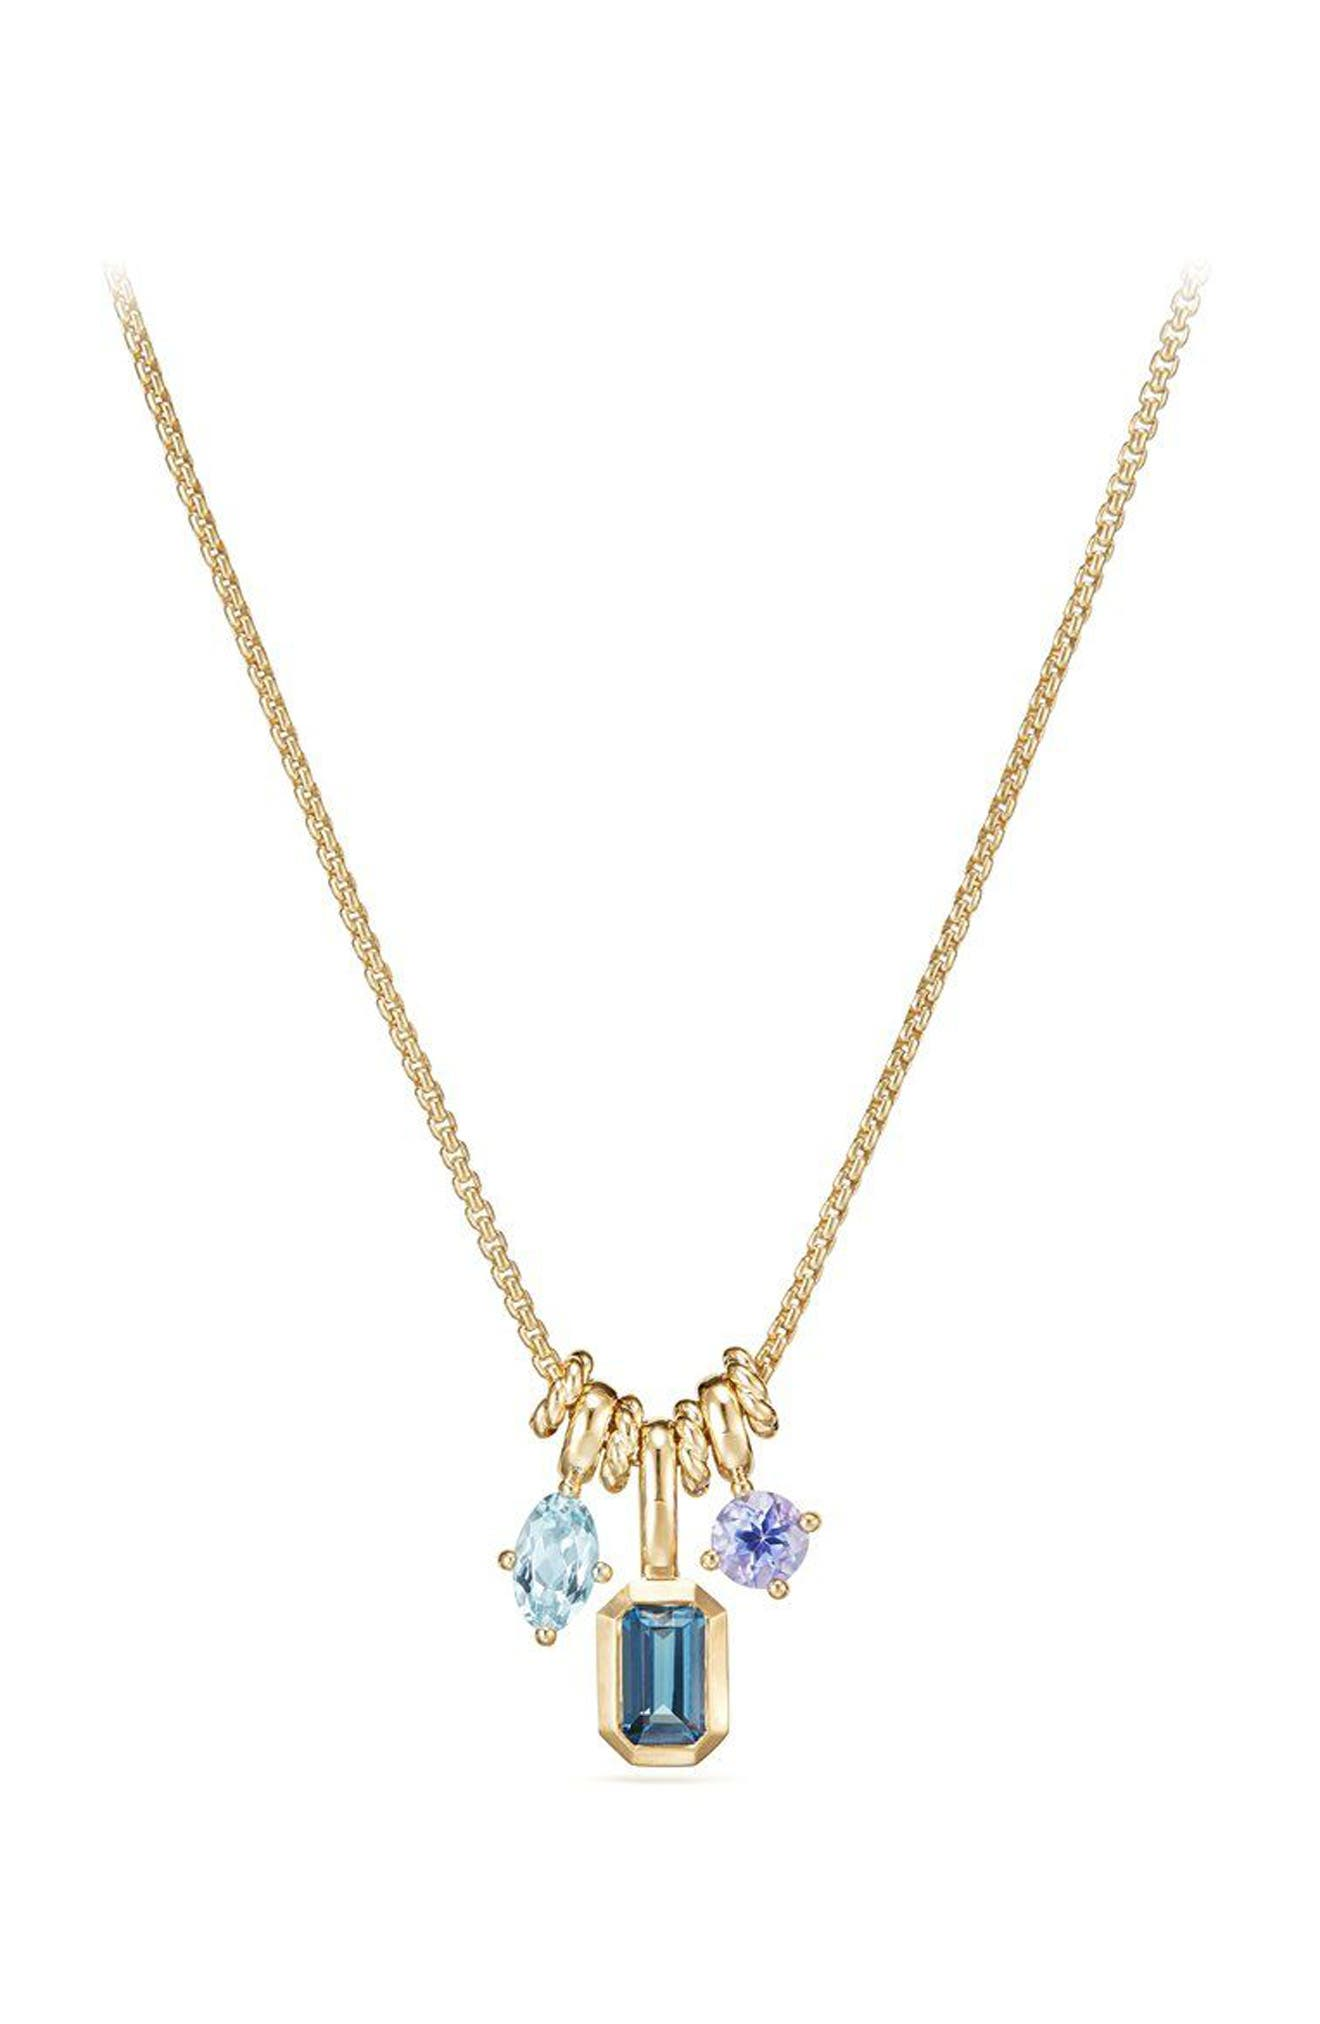 Novella Pendant Necklace in 18K Gold,                             Main thumbnail 1, color,                             Gold/ Blue Topaz/ Aquamarine